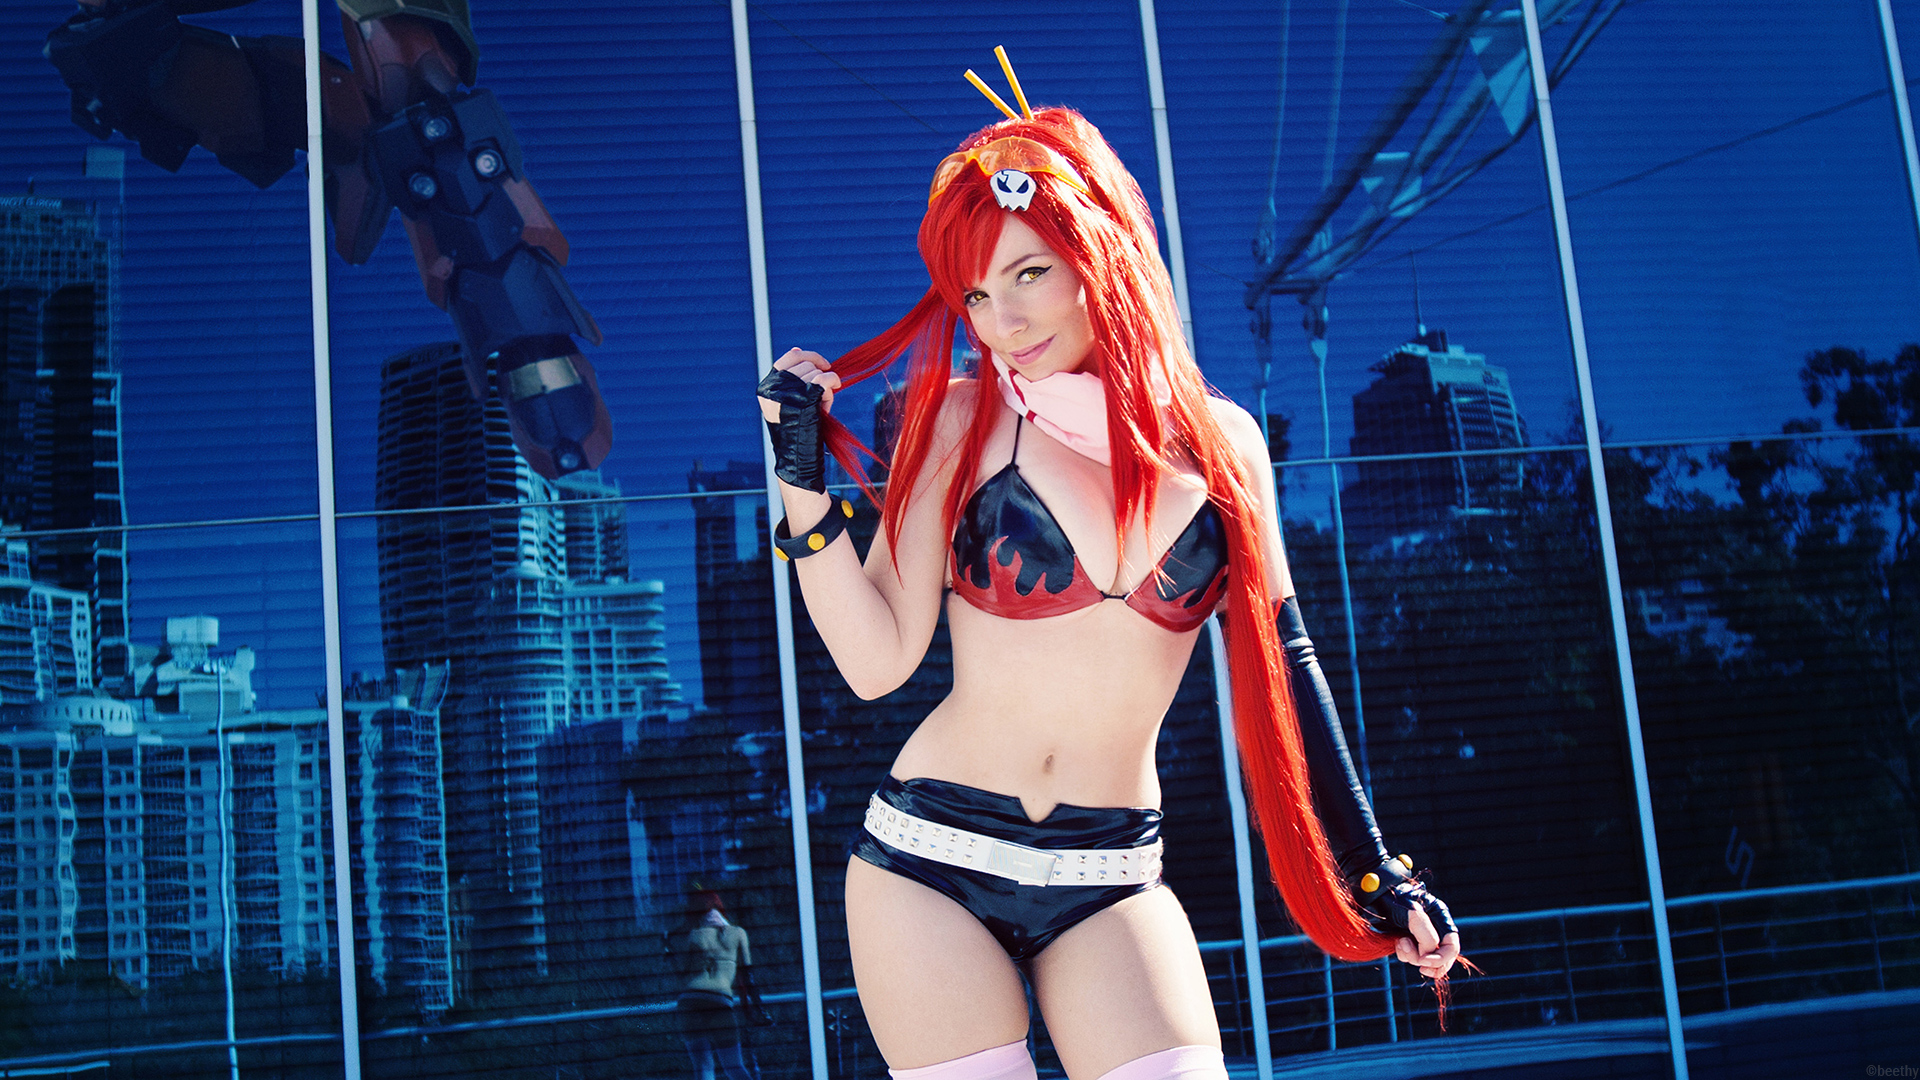 Yoko - Gurren Lagann 1080p HD Wallpaper by beethy